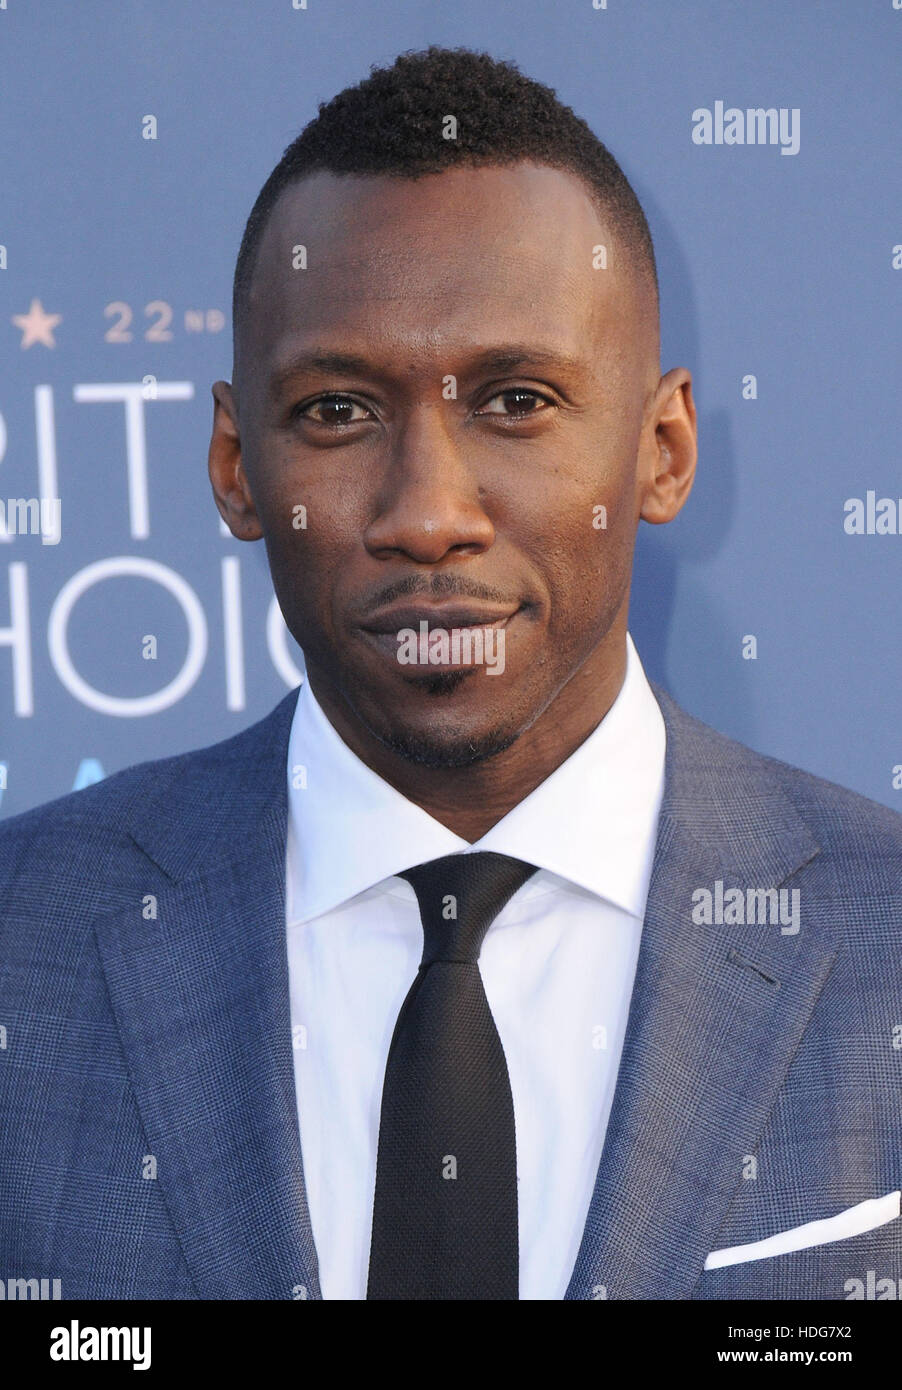 Santa Monica, Californie, USA. Dec 11, 2016. 11 Décembre 2016 - Santa Monica, Californie - Mahershala Ali. Photo Stock